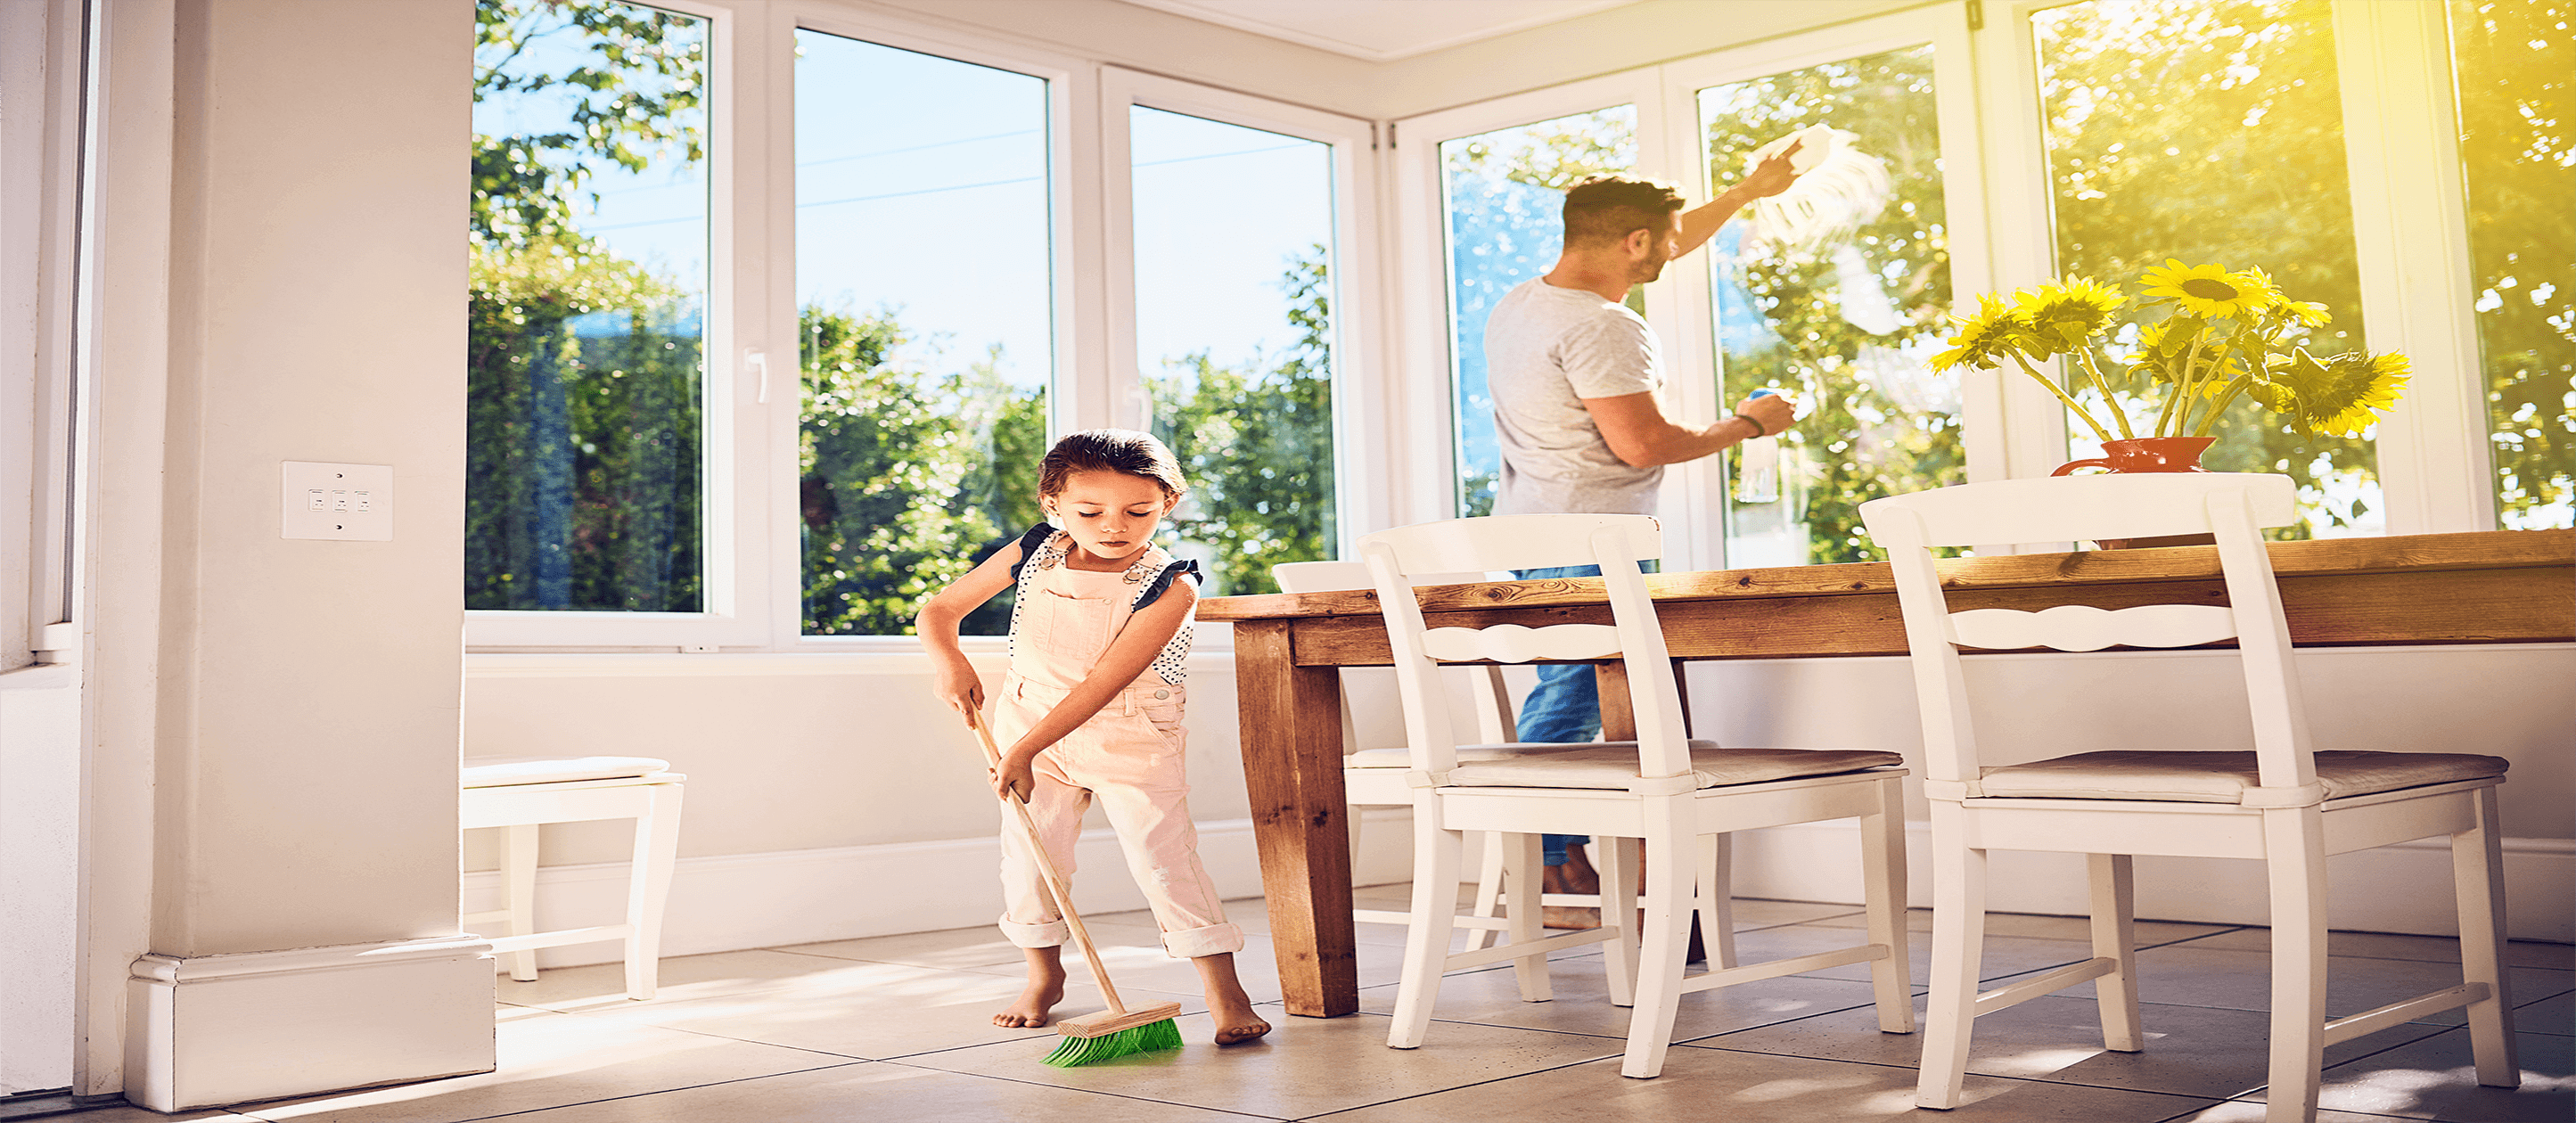 Image of child sweeping floor with dad cleaning windows